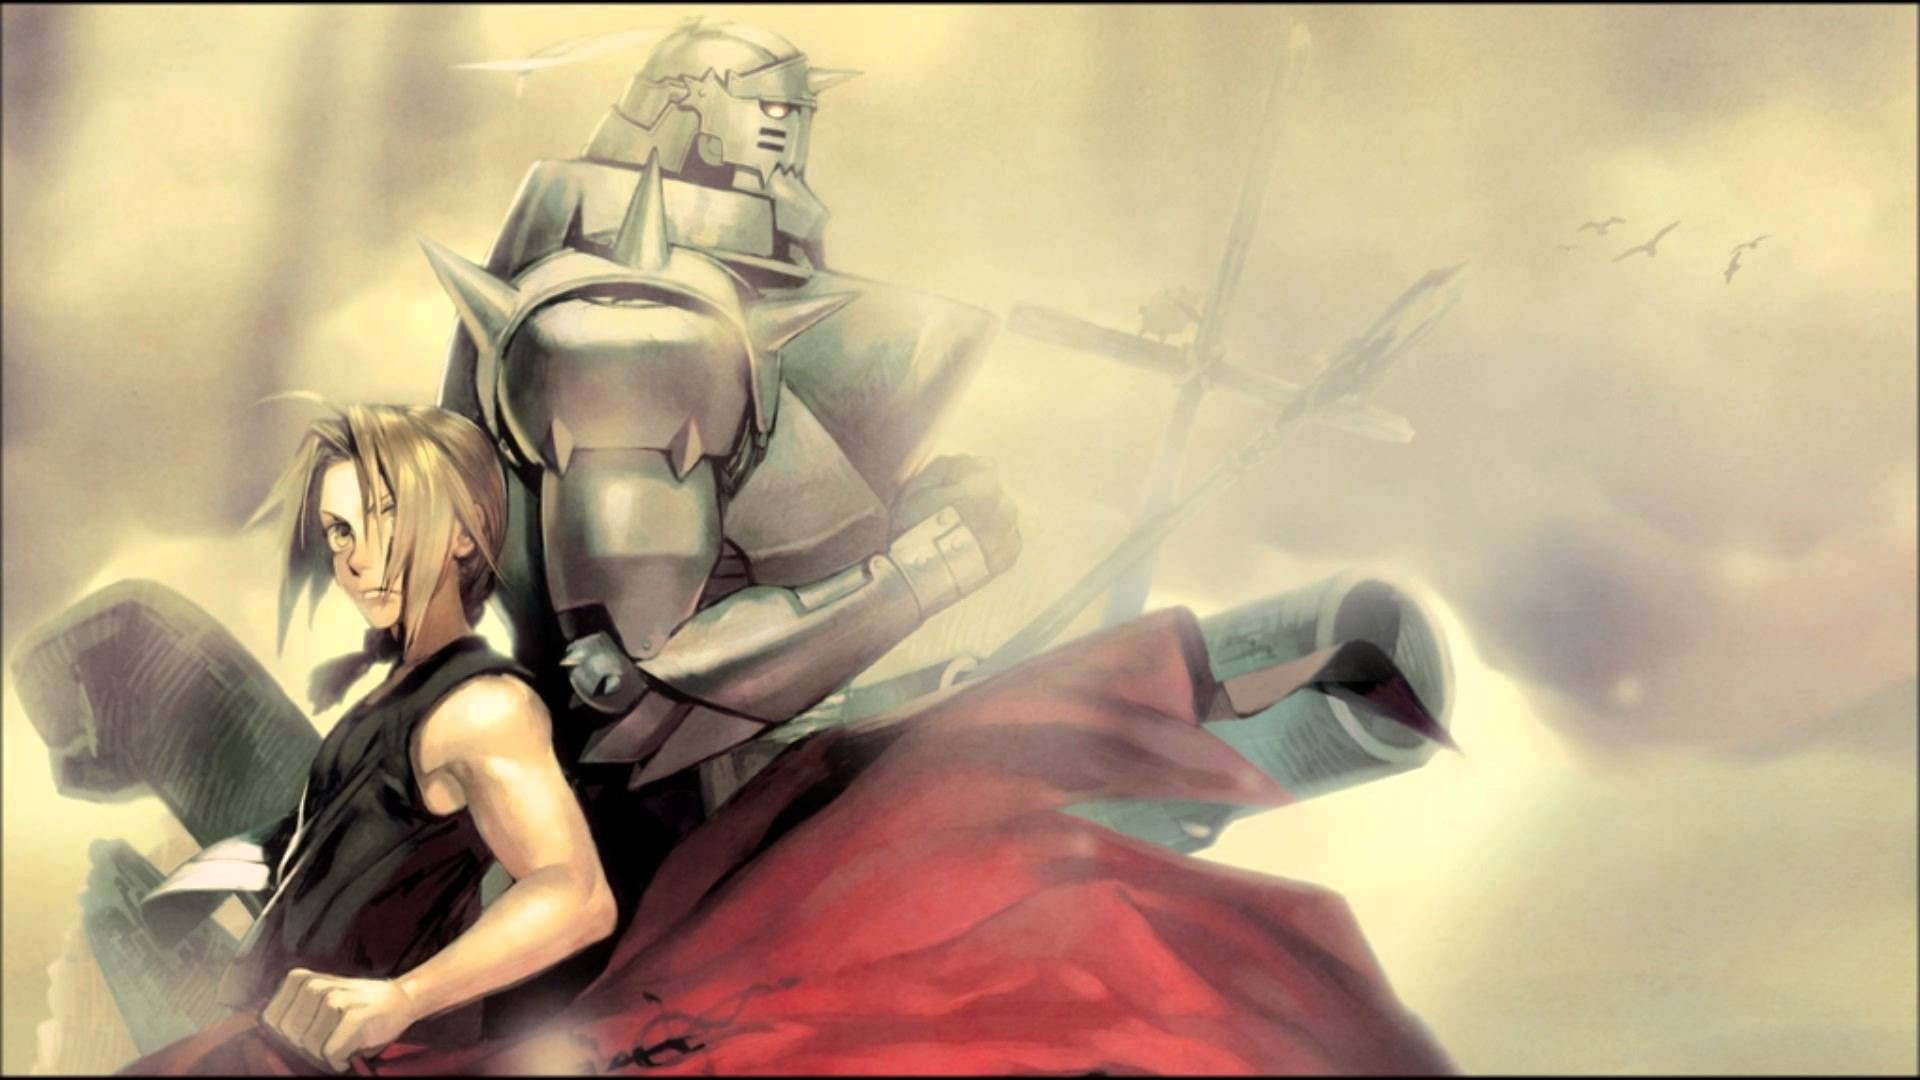 Res: 1920x1080, Full Metal Alchemist Wallpaper FMA